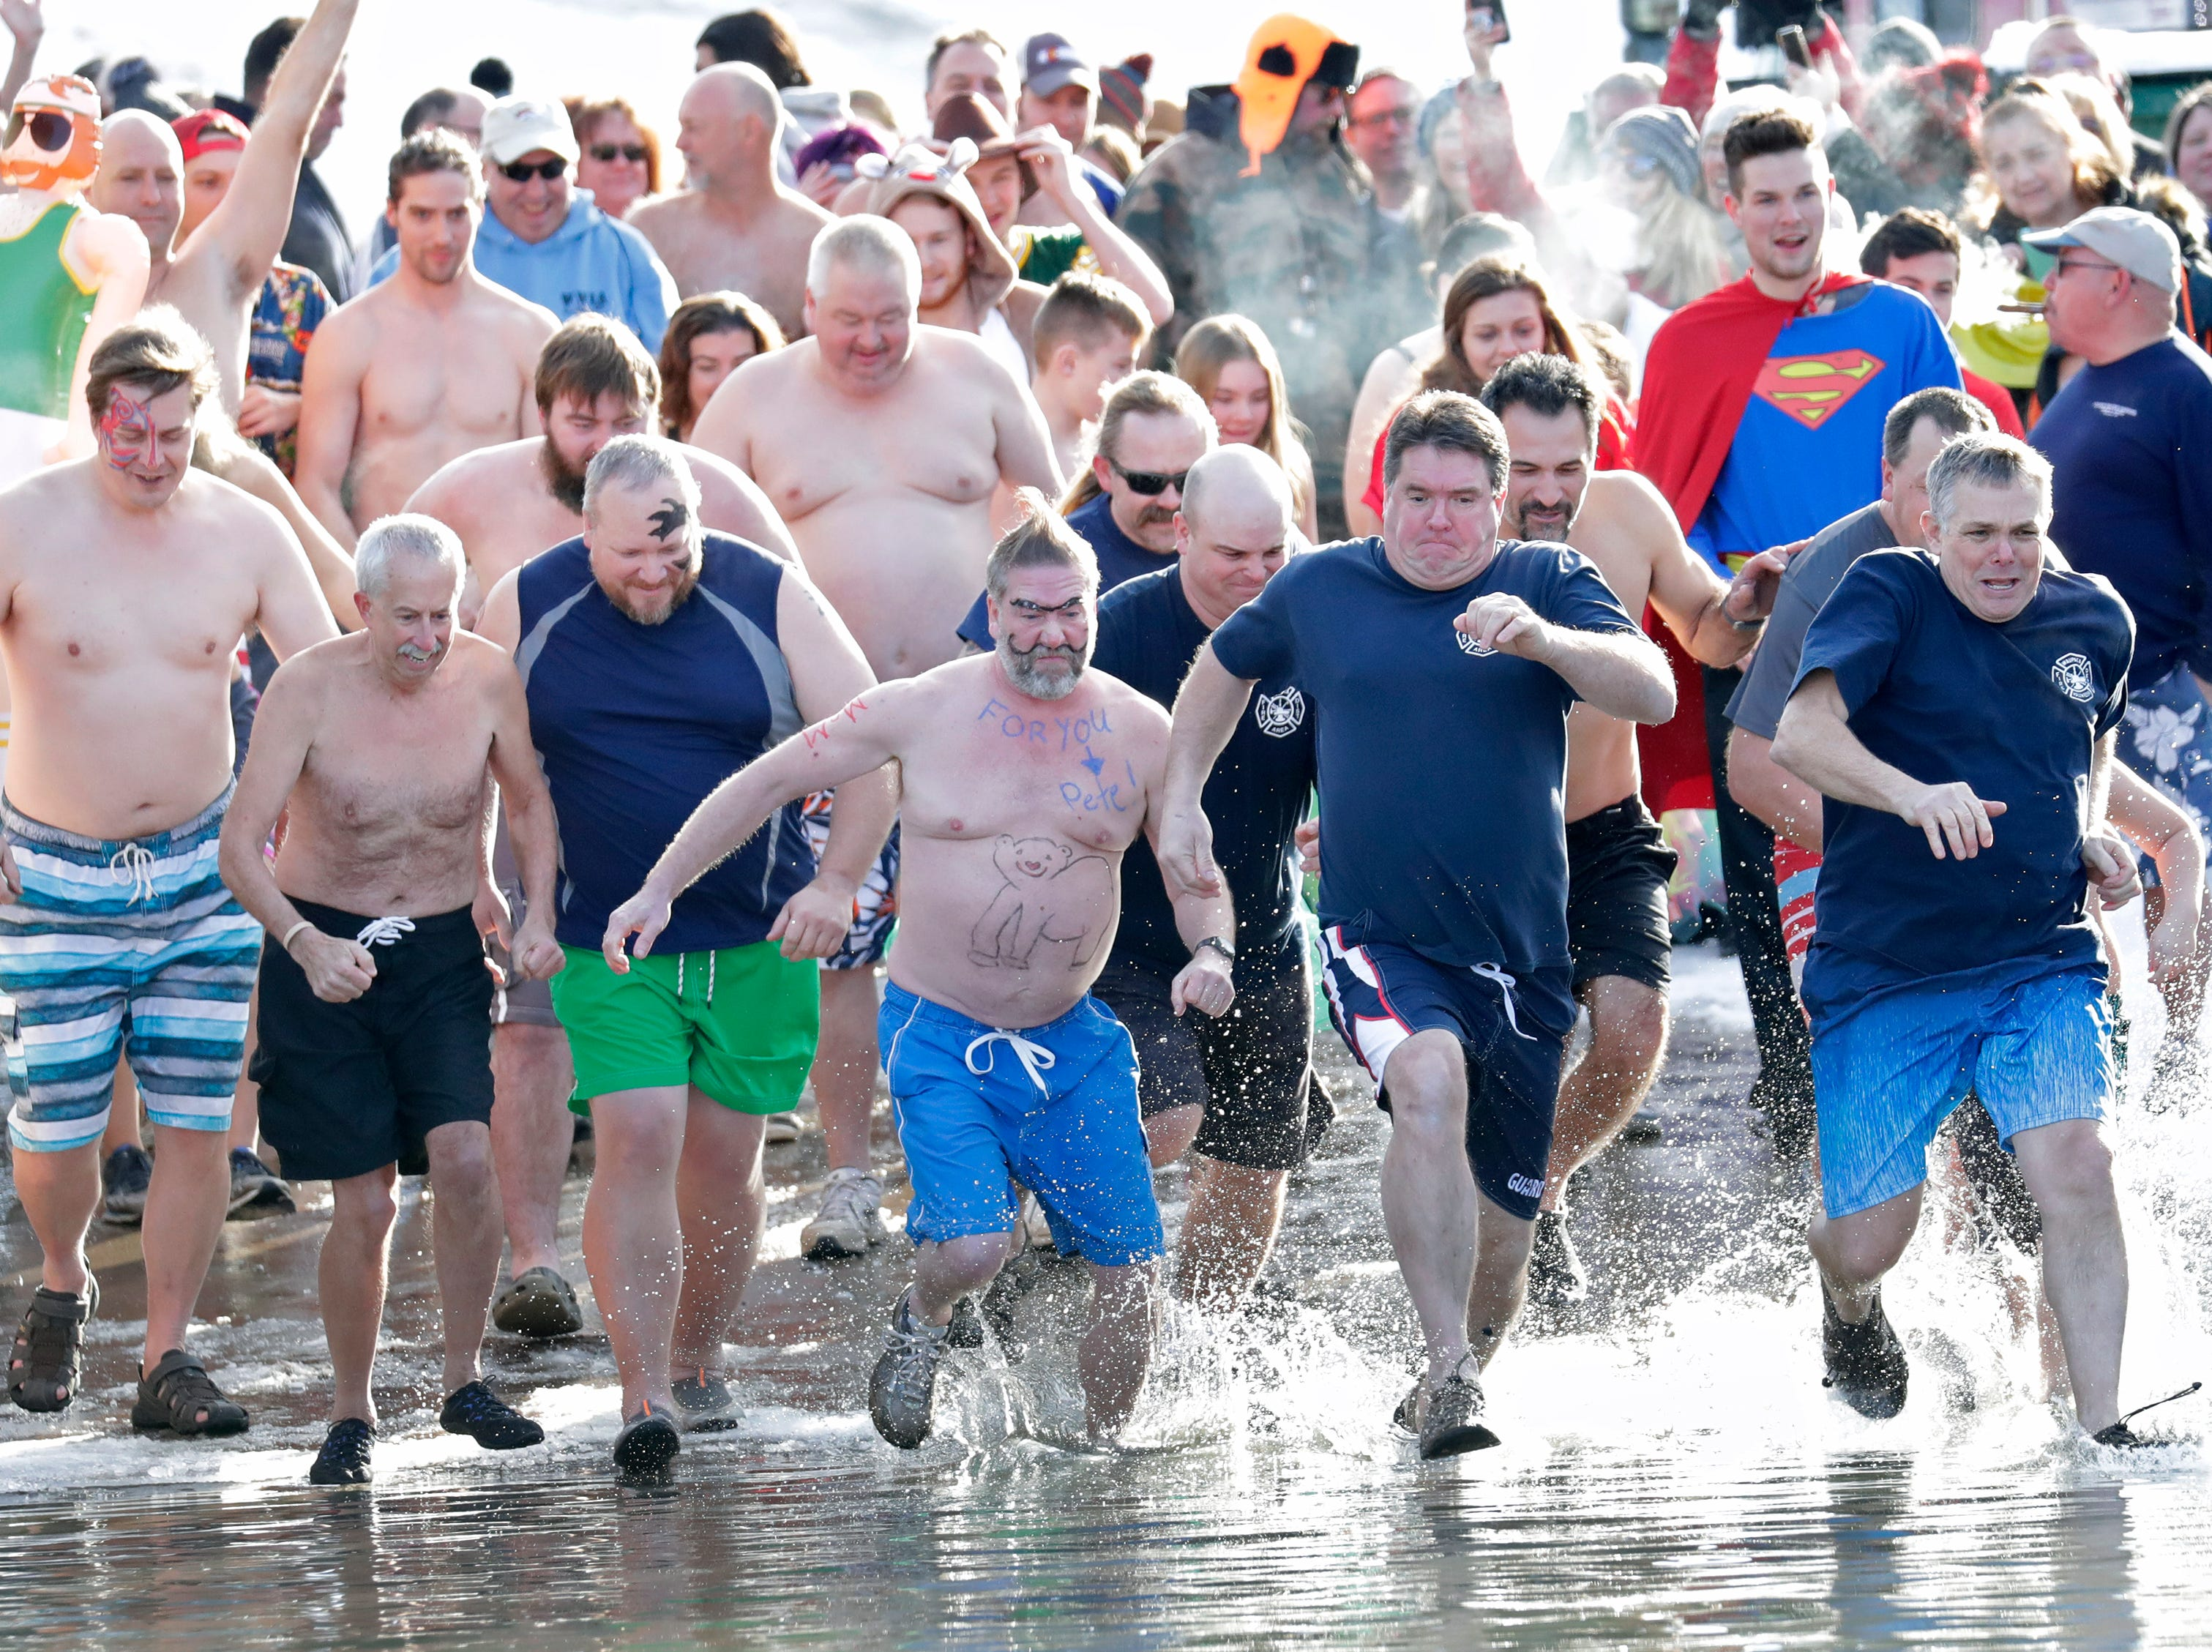 Particpants rush the bitter water at the start of the Polar Bear Plunge Tuesday, January 1, 2019, at Becker Marine on Lime Kiln Lake in Waupaca, Wis. 